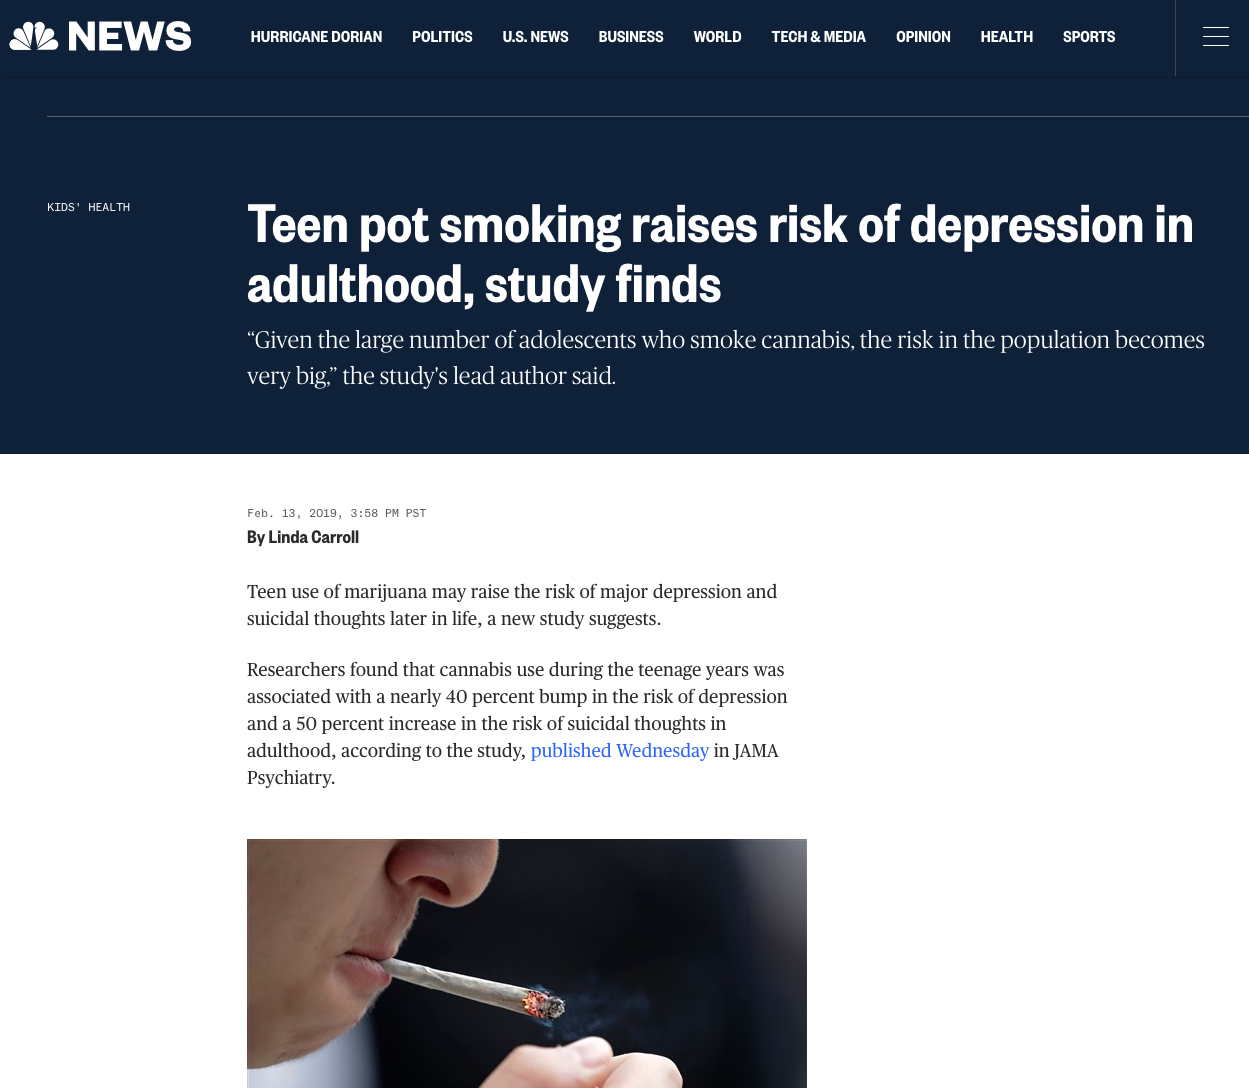 Teen pot smoking raises risk of depression in adulthood, study finds